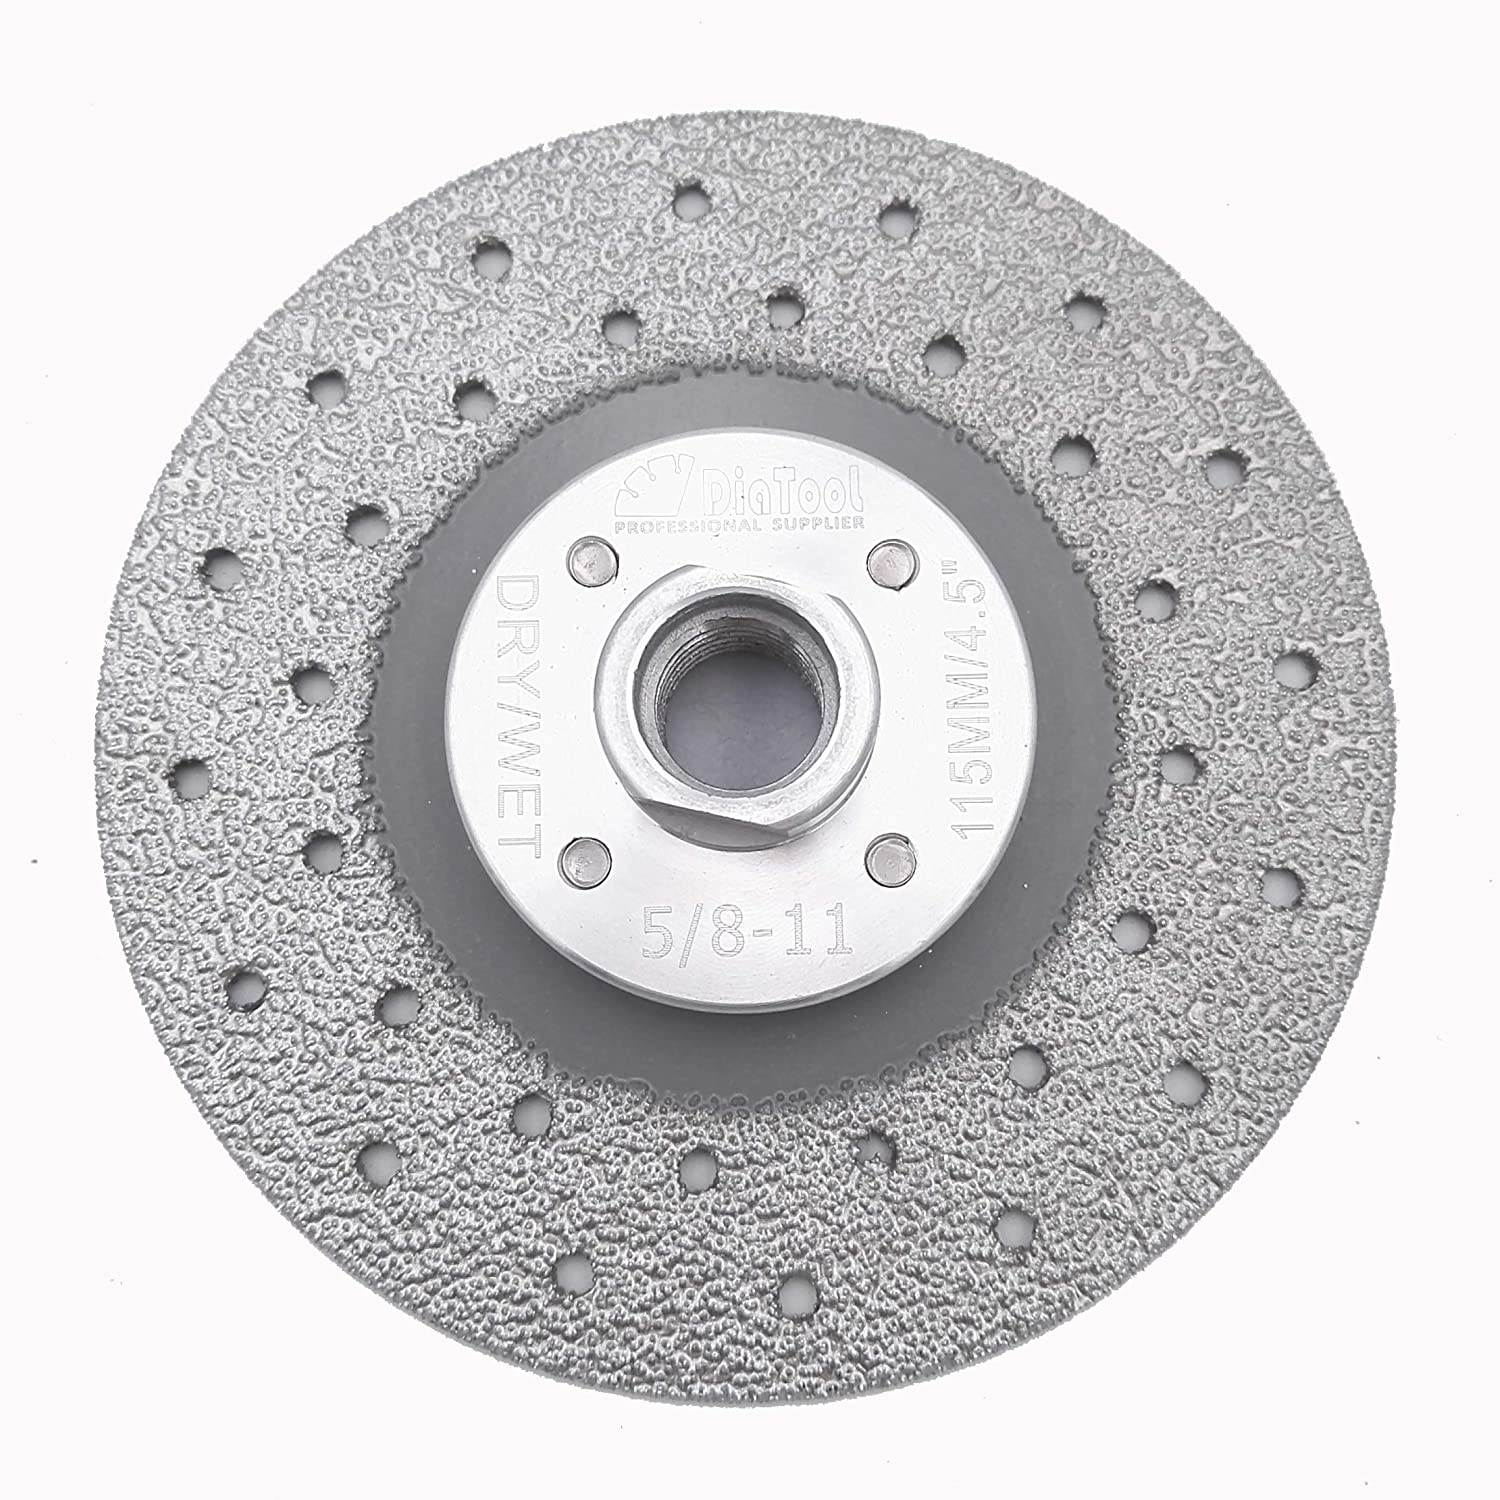 4 inch DIATOOL Double Sided Vacuum Brazed Diamond Cutting /& Grinding Disc With 5//8-11 Flange Premium Quality for Fast Cutting Shaping Grinding And Smoothing